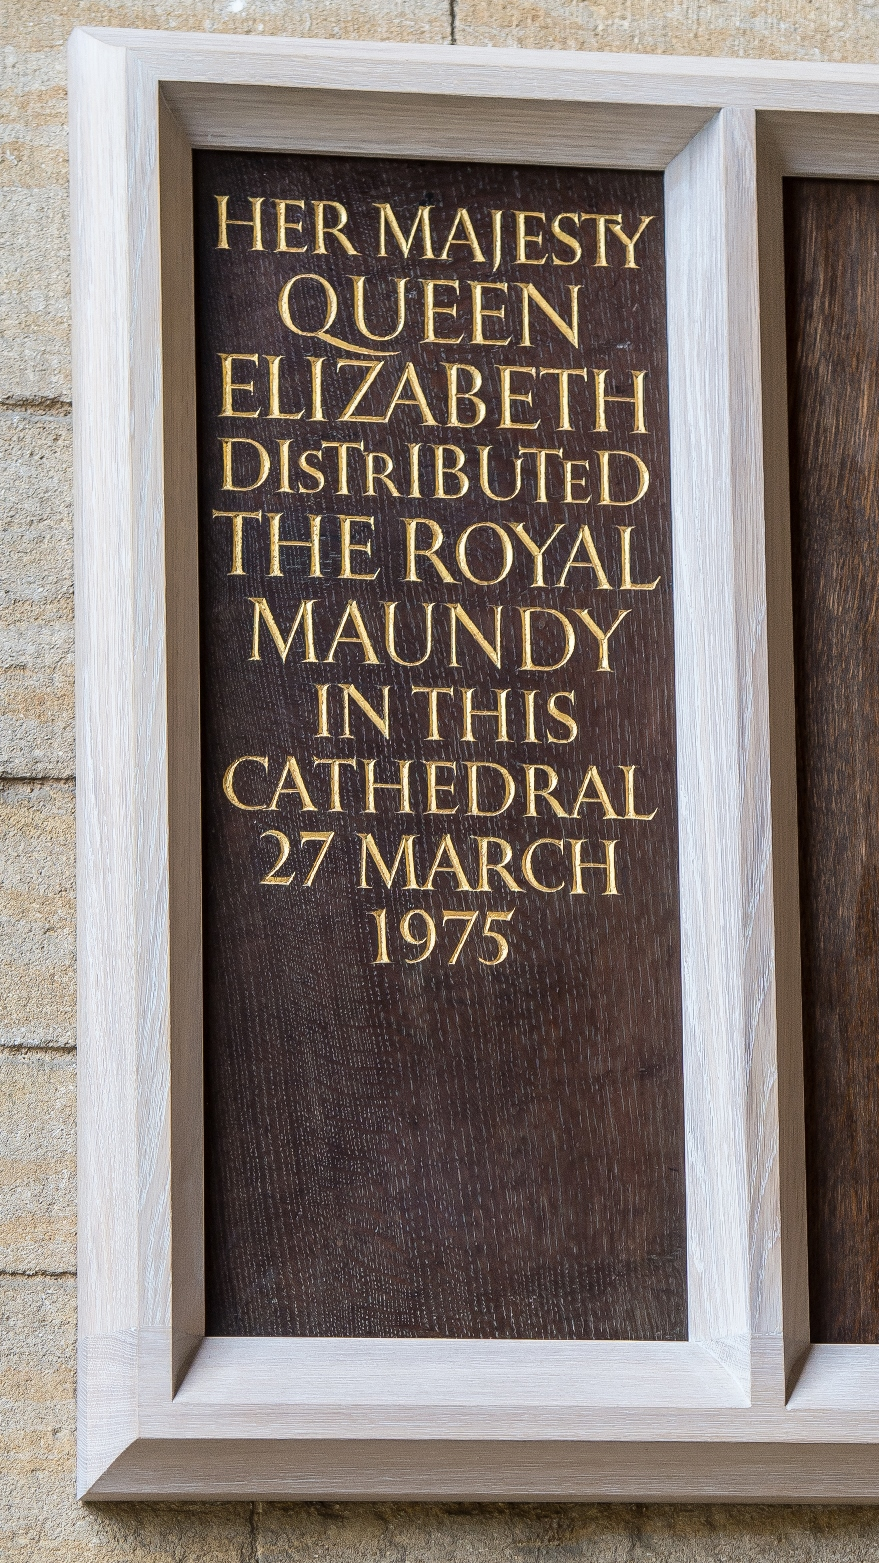 A plaque commemorating Queen Elizabeth II giving the Maundy Money at Peterborough Cathedral, 1975